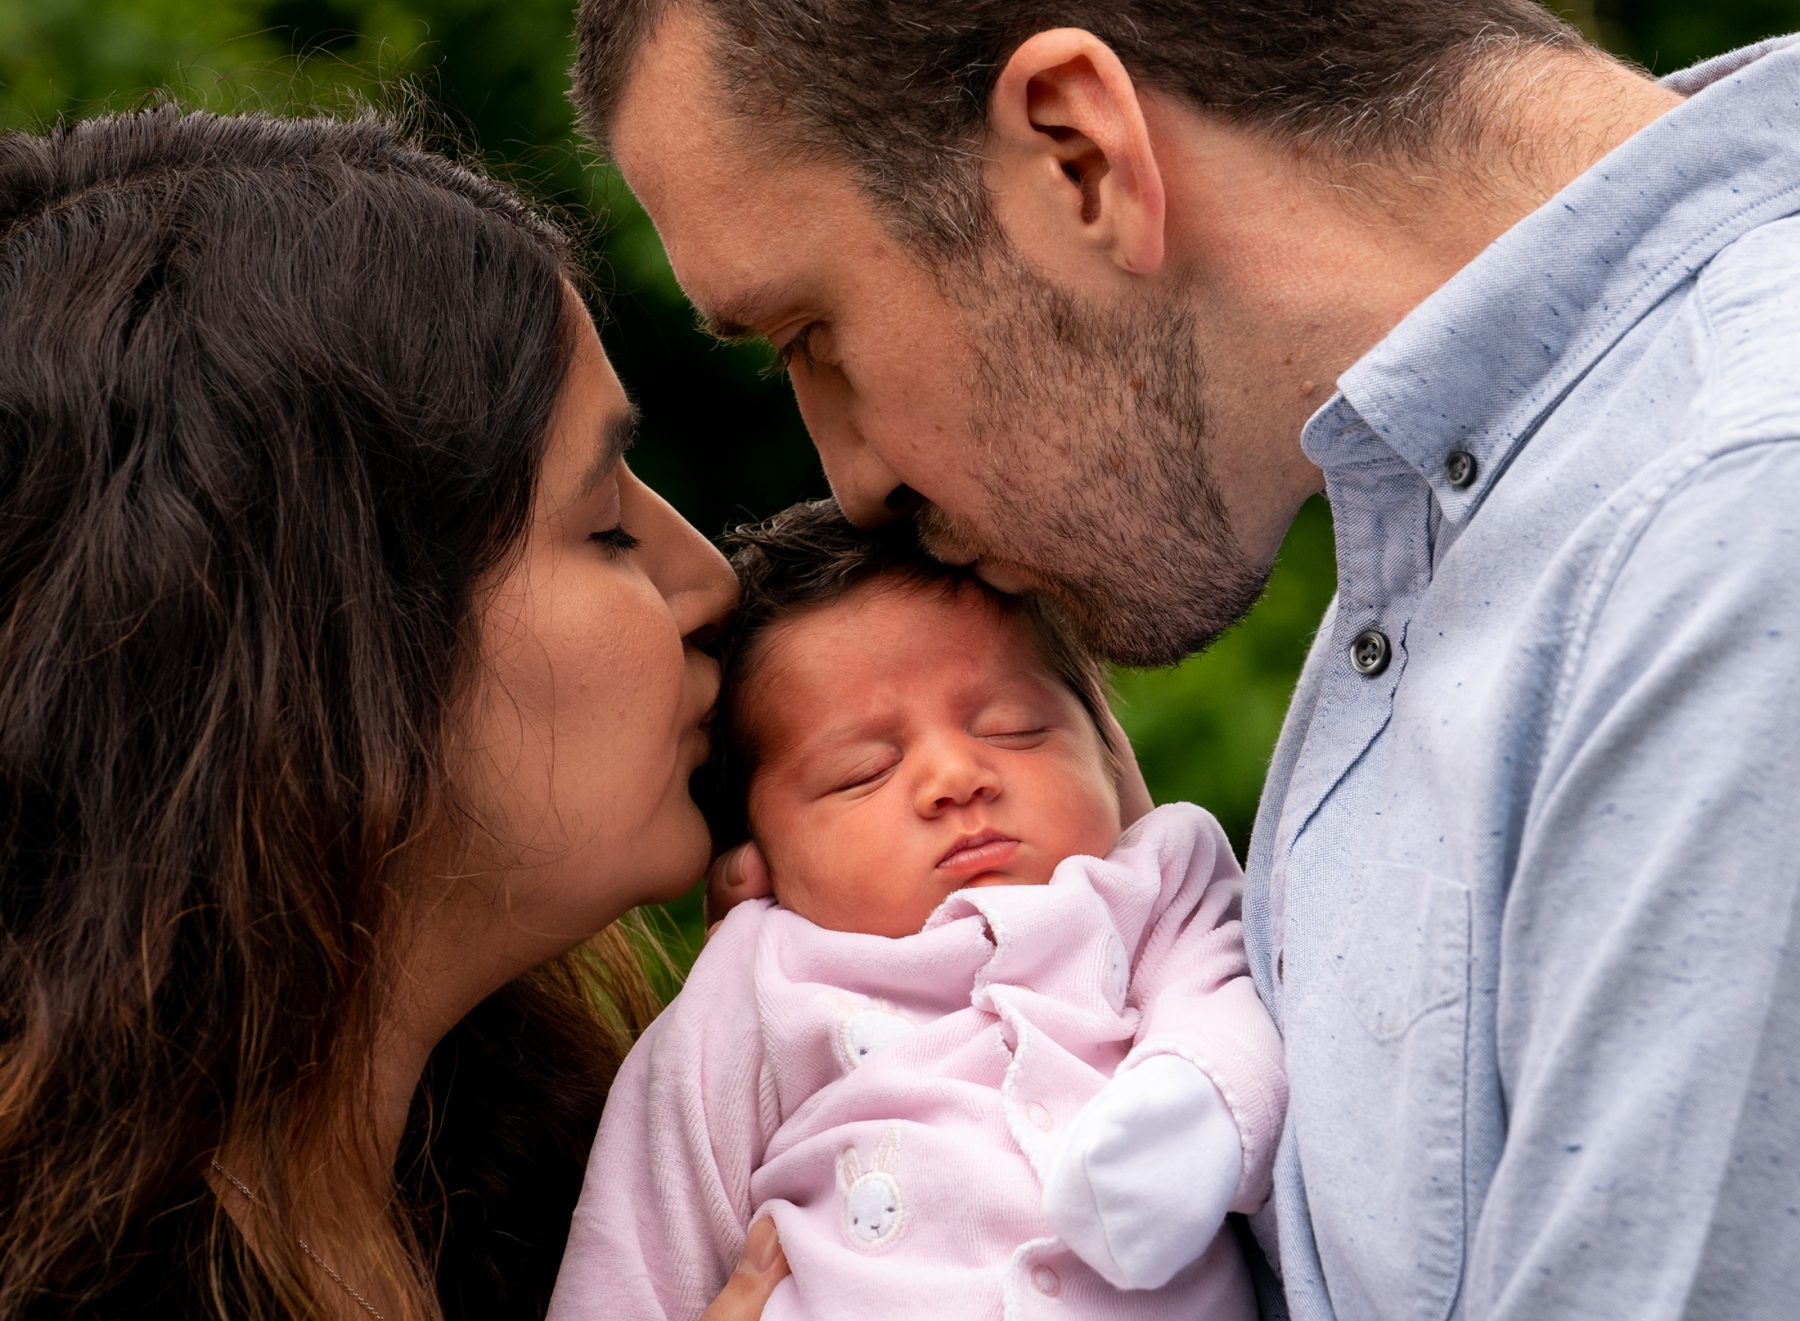 A parent and father kiss the head of their new born child in Stockport